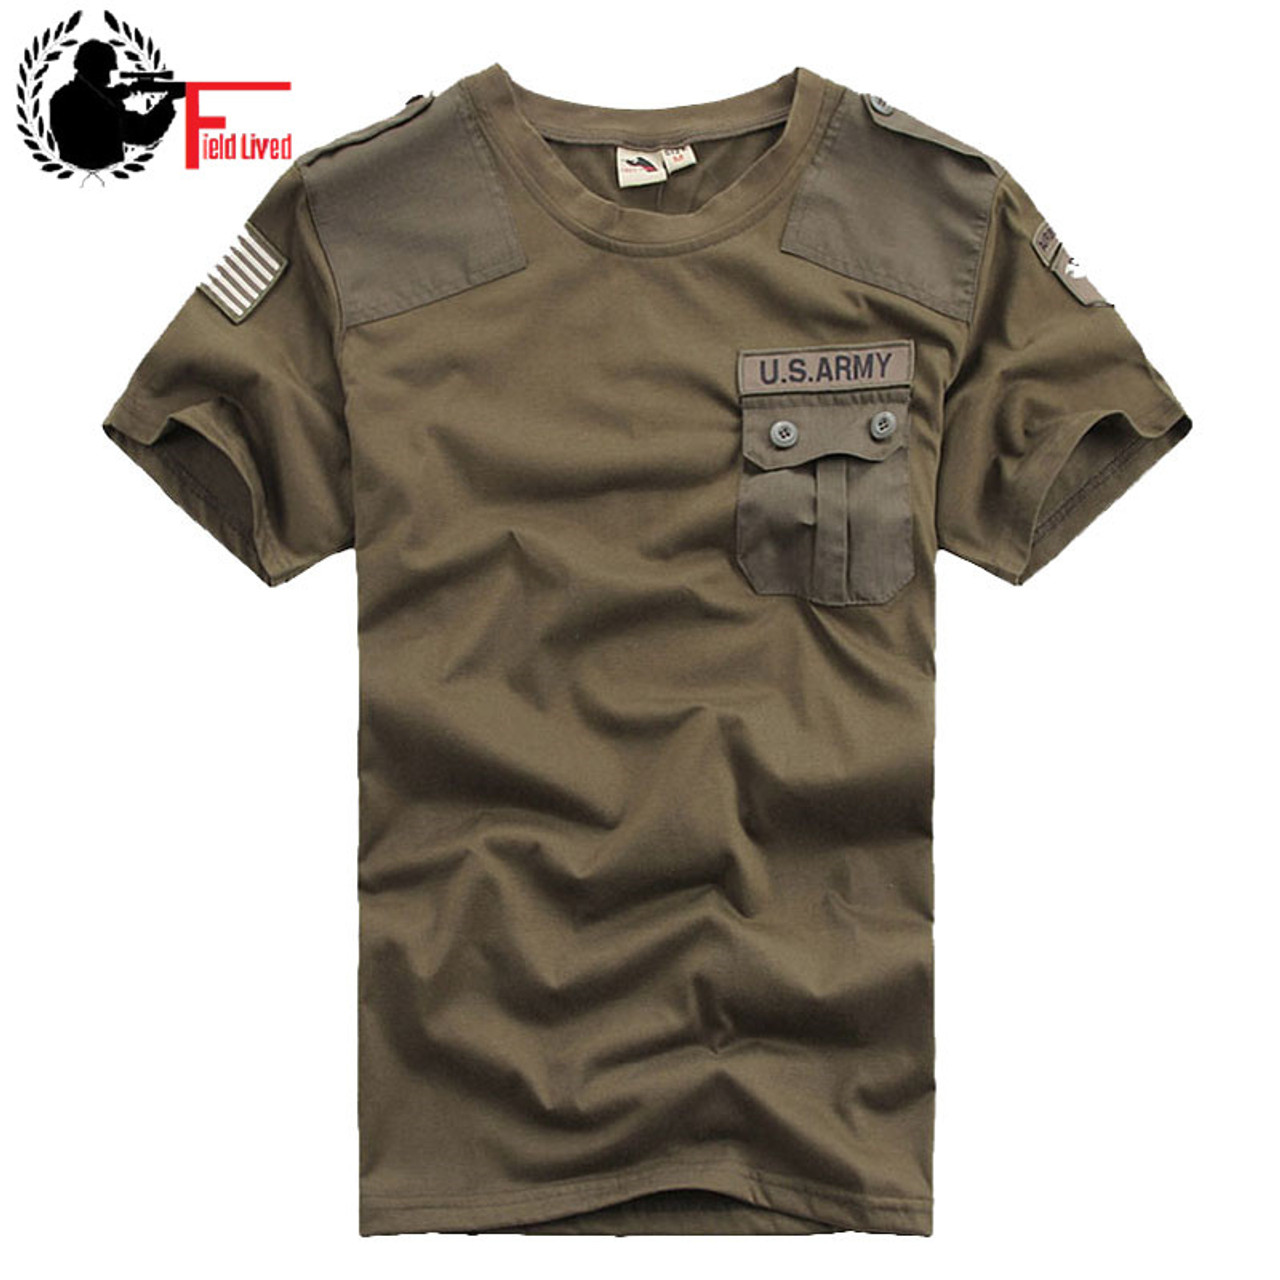 Imported Mens T-shirts Casual Confederate US Army 101st Airborne Division  100% Cotton T ... 684992343e6